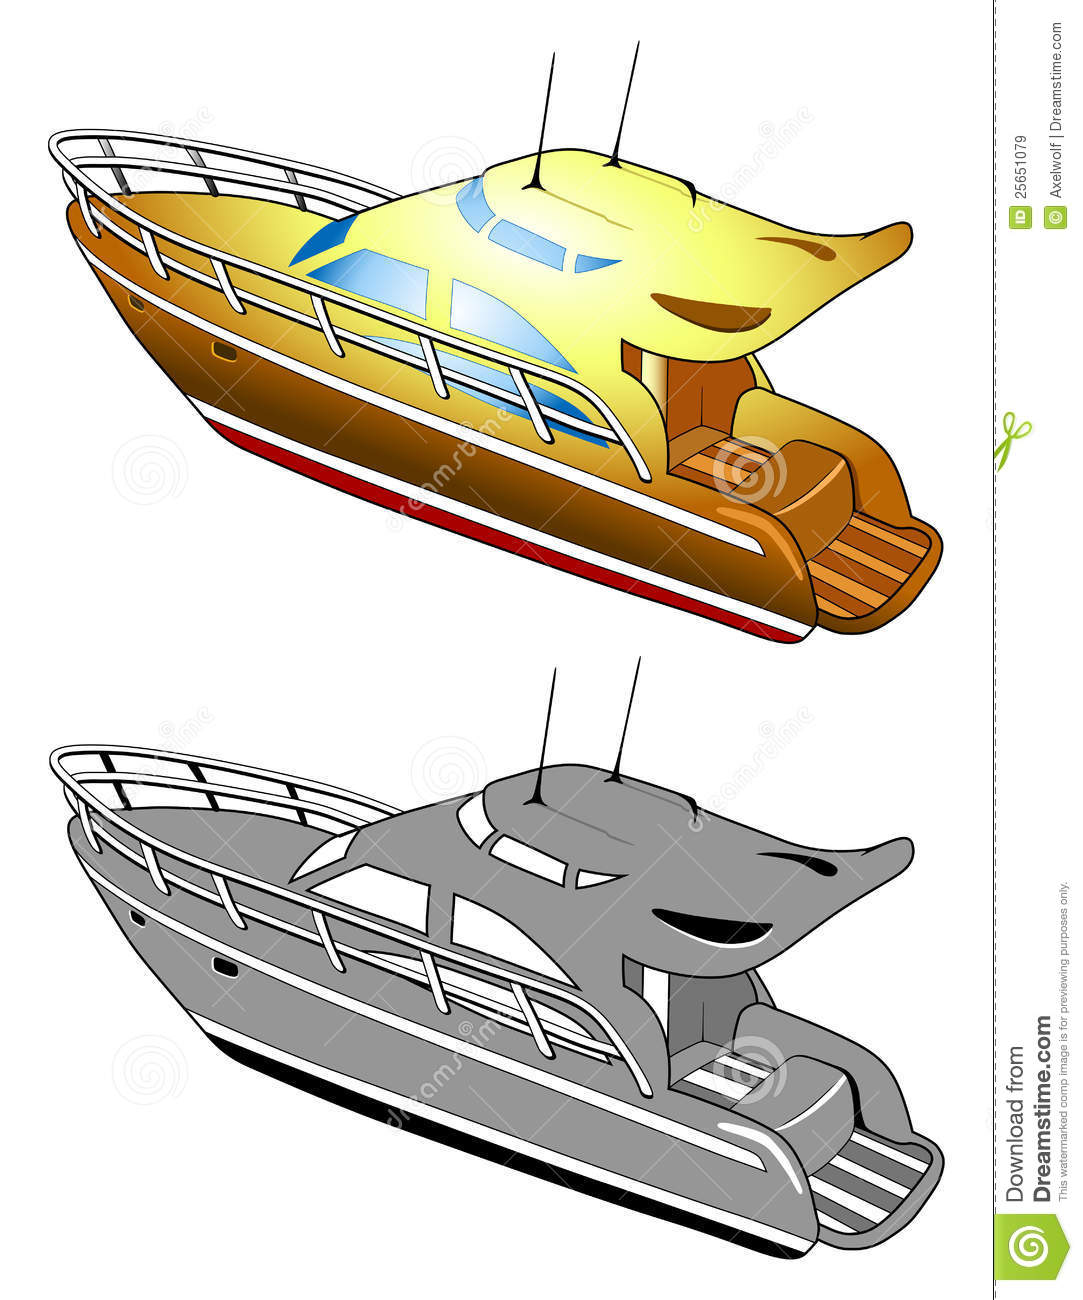 Yacht, Speed Boat, Vector Illustration Royalty Free Stock Images ...